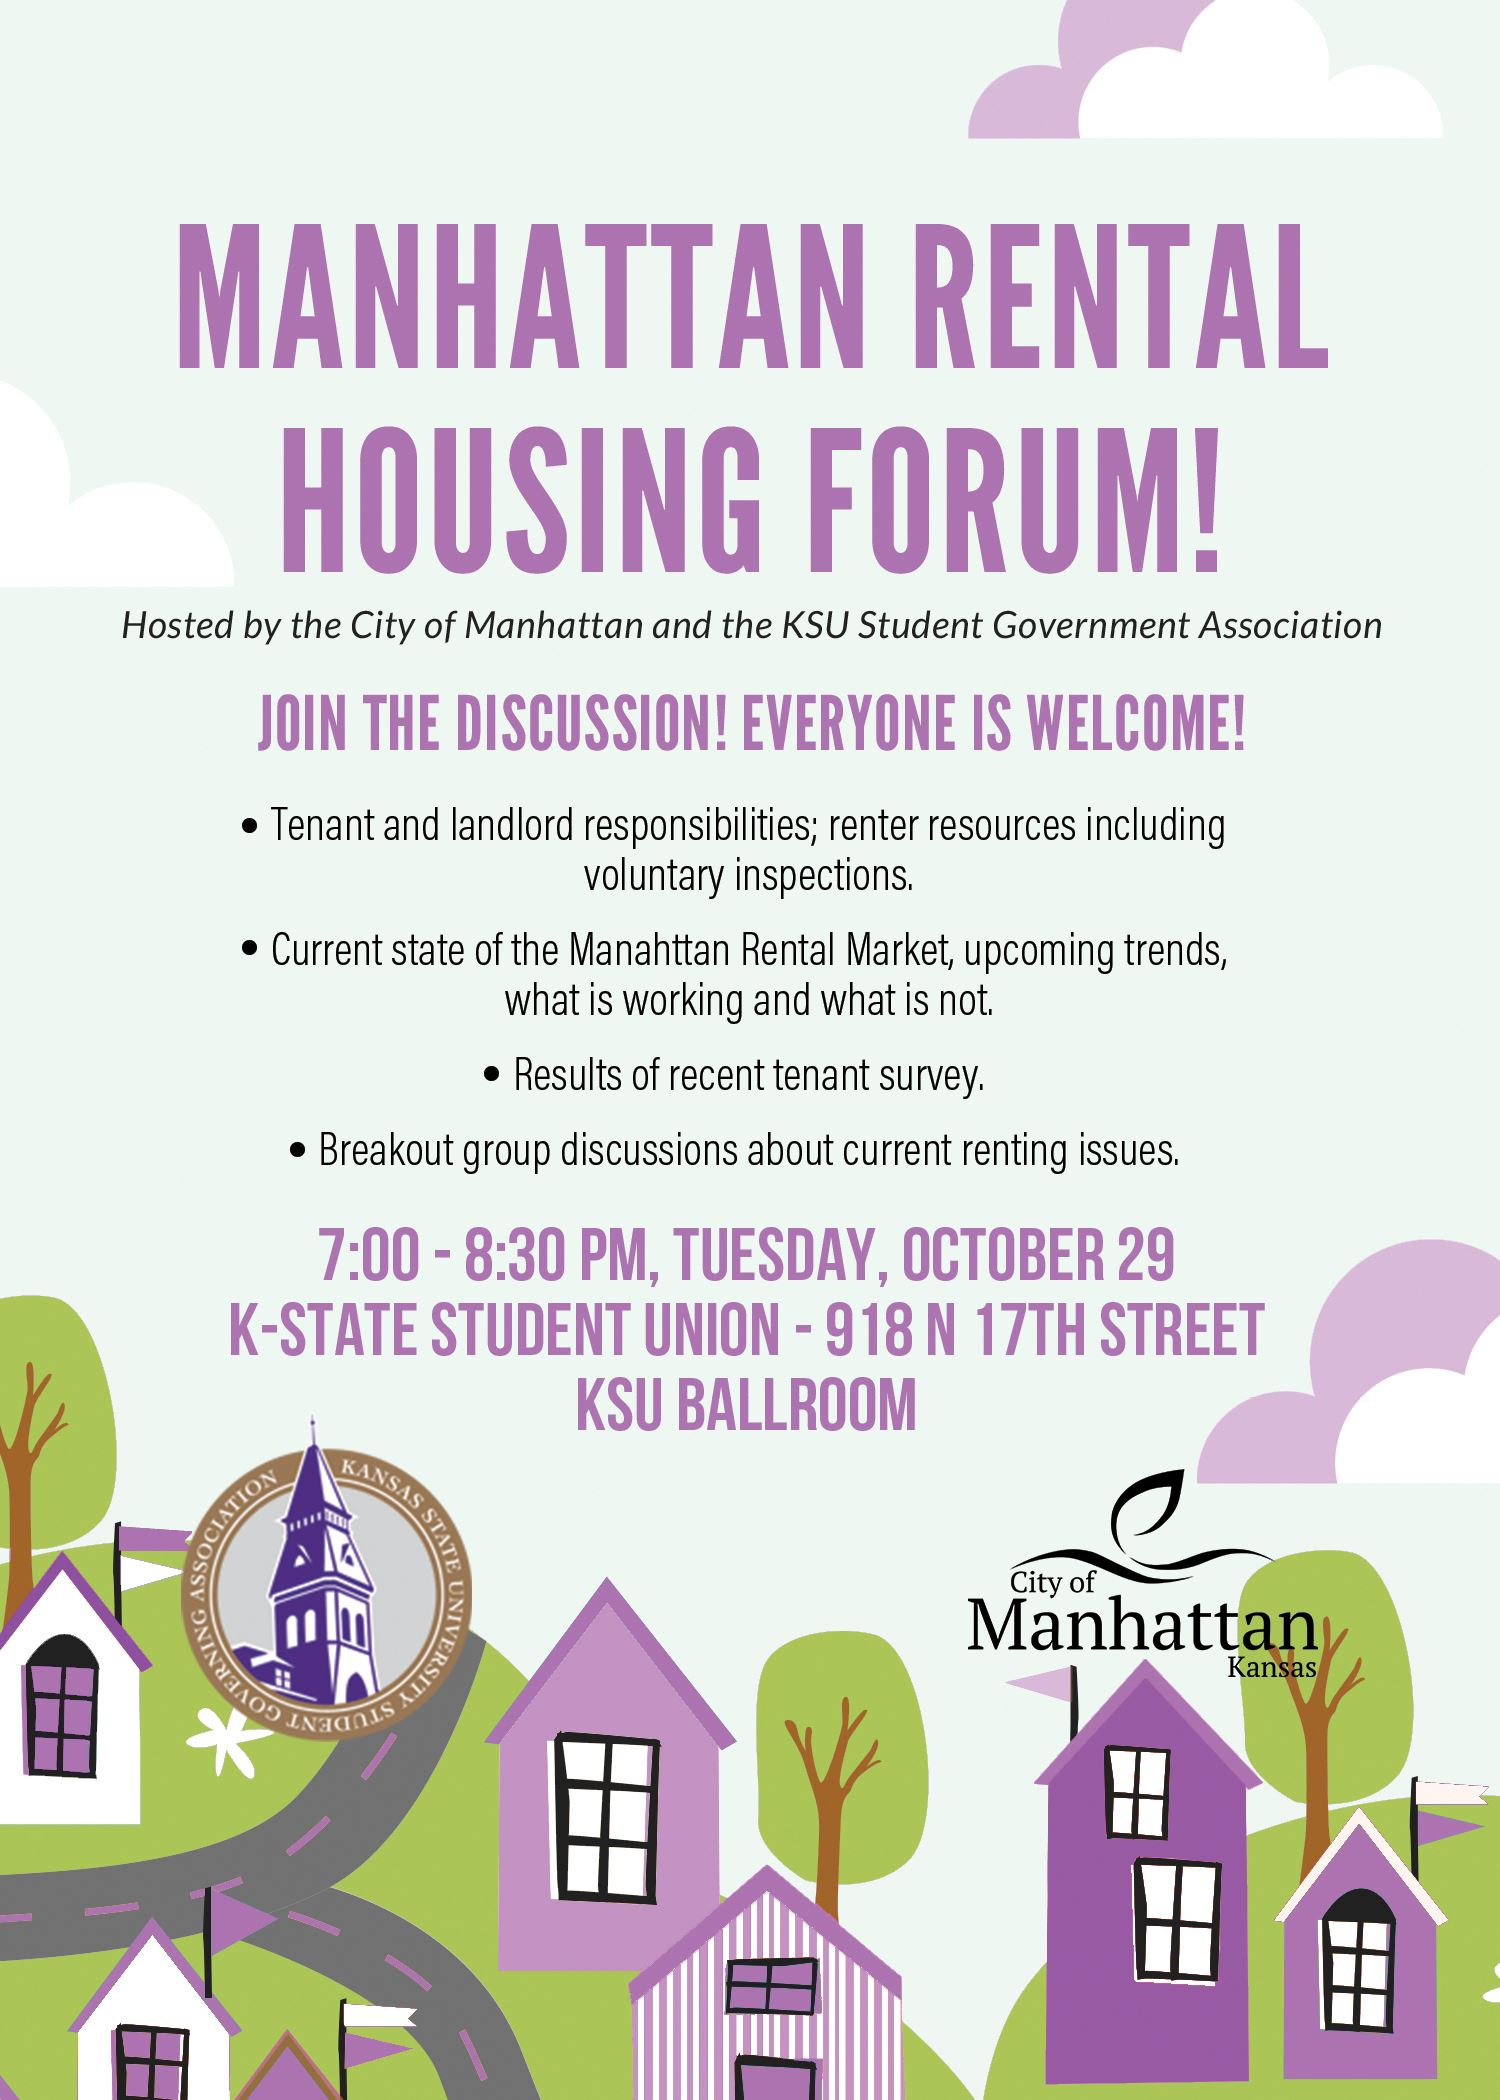 flyer for the housing forum